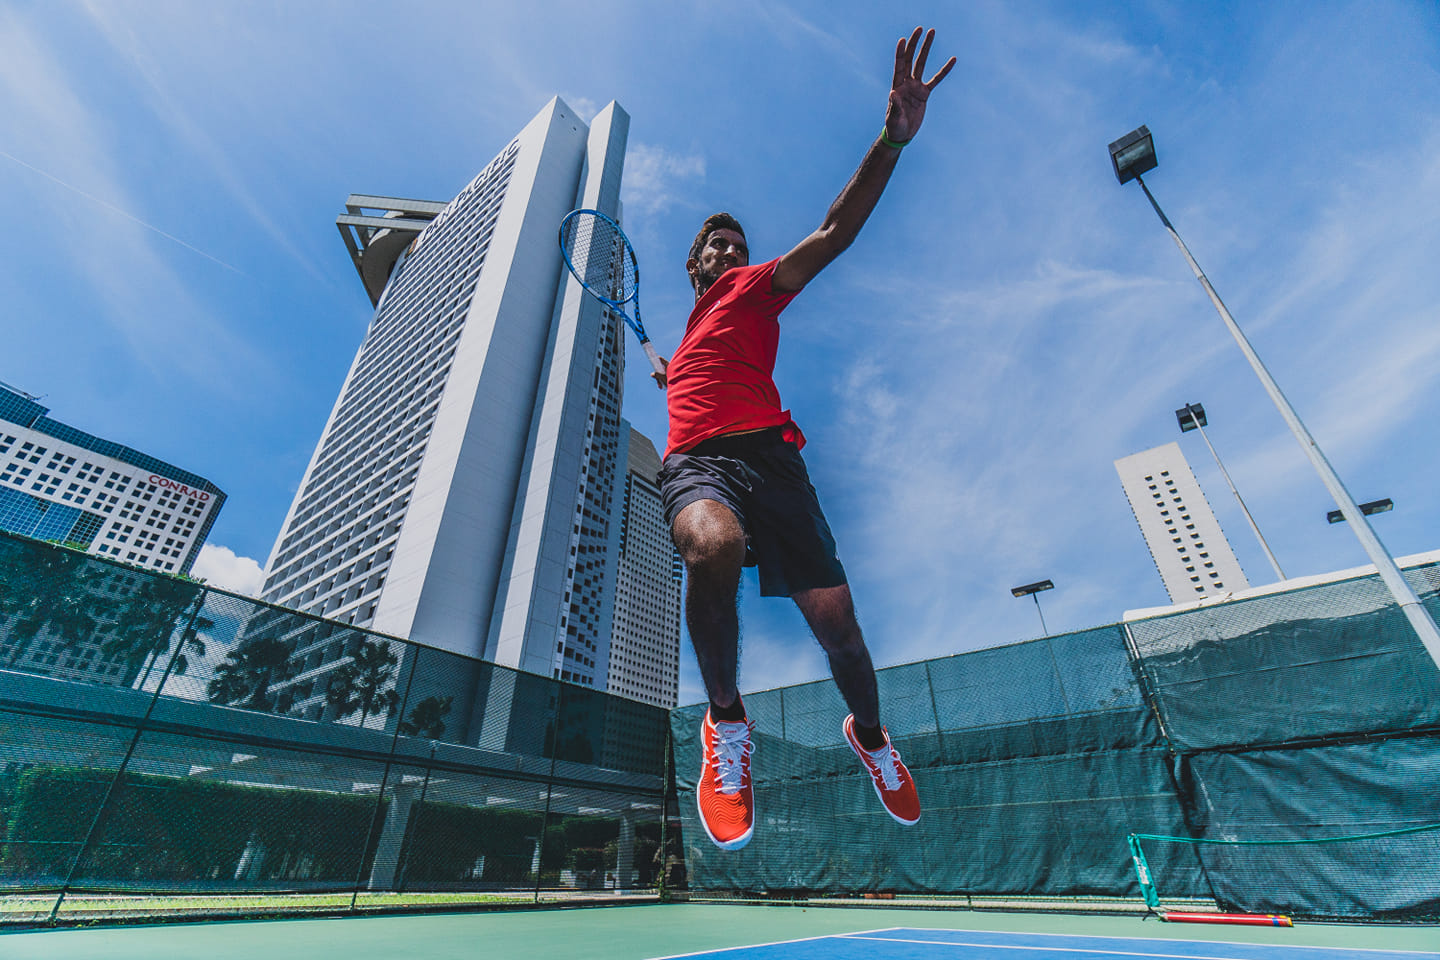 S'pore's No 1 Shaheed Alam : I will train even harder and aim to play professionally on the ATP Tour!